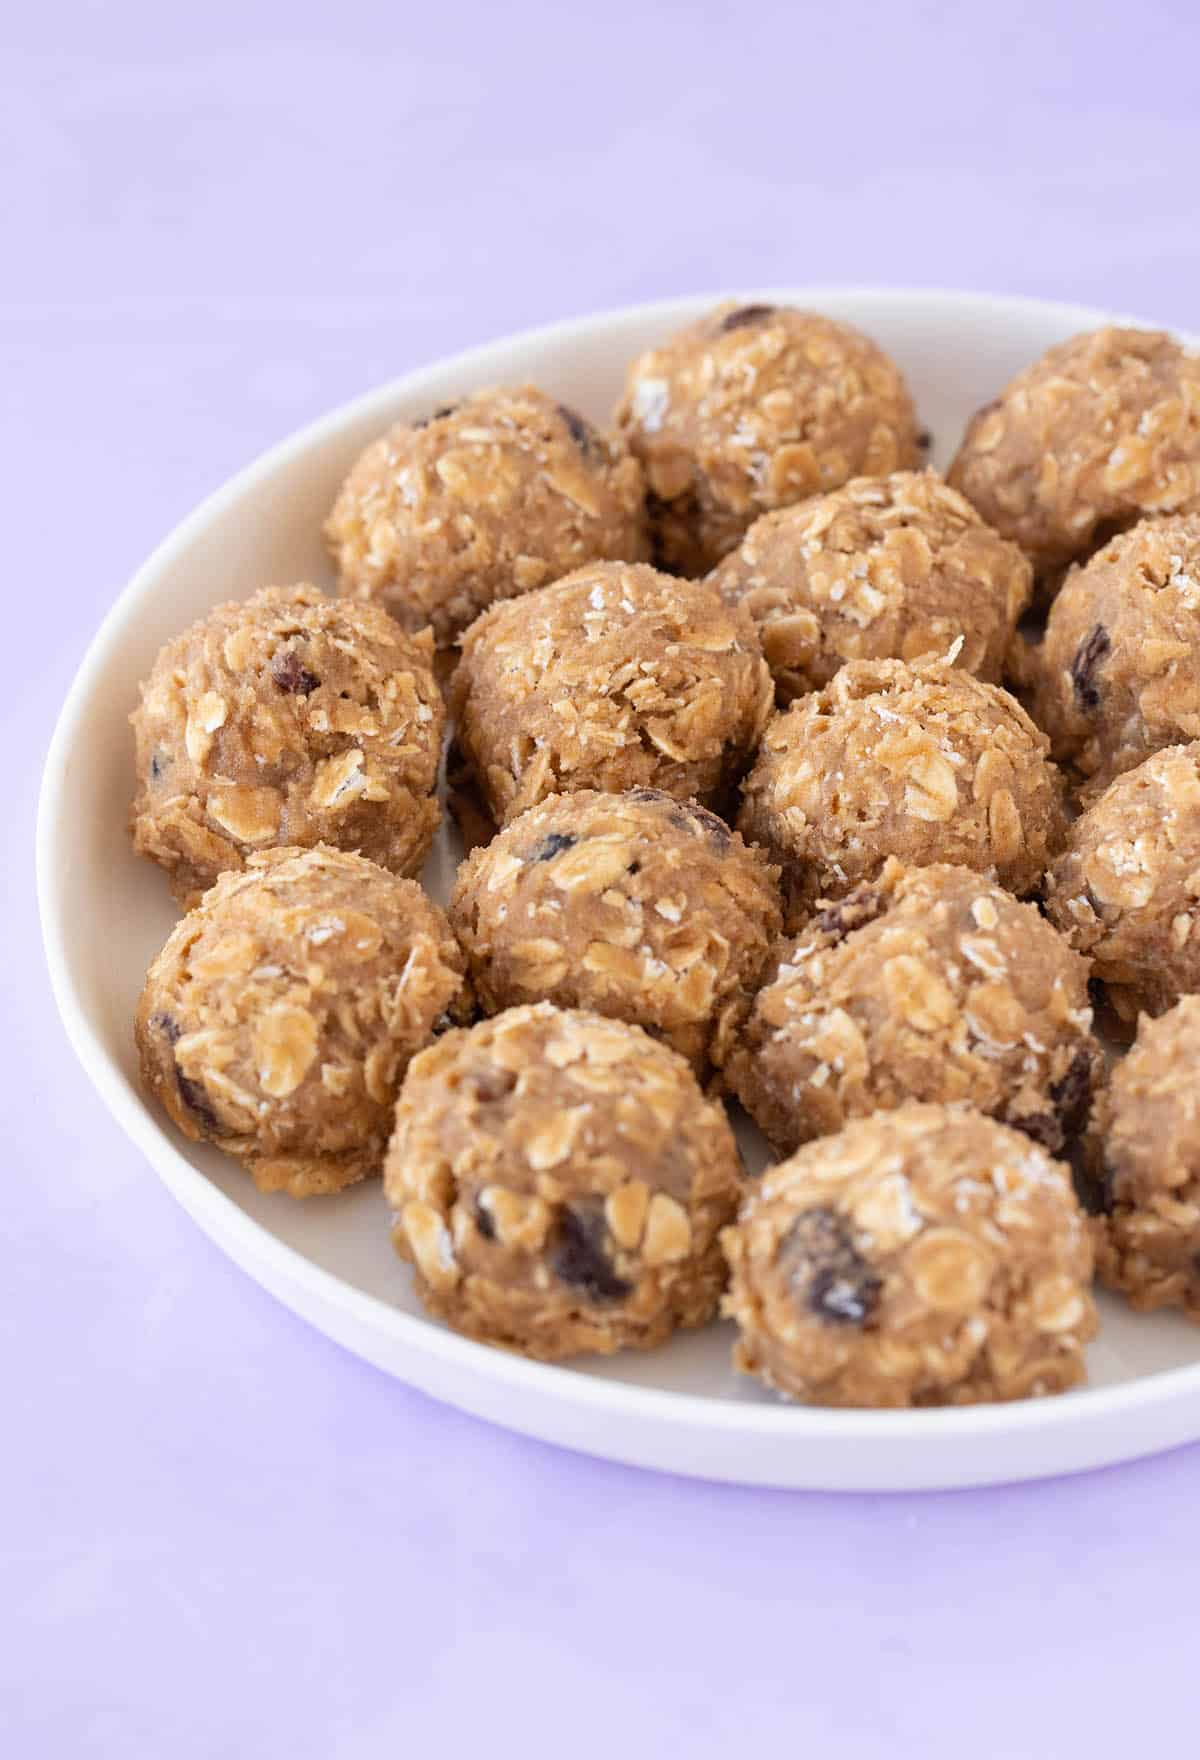 A white plate with balls of Oatmeal Raisin cookie dough